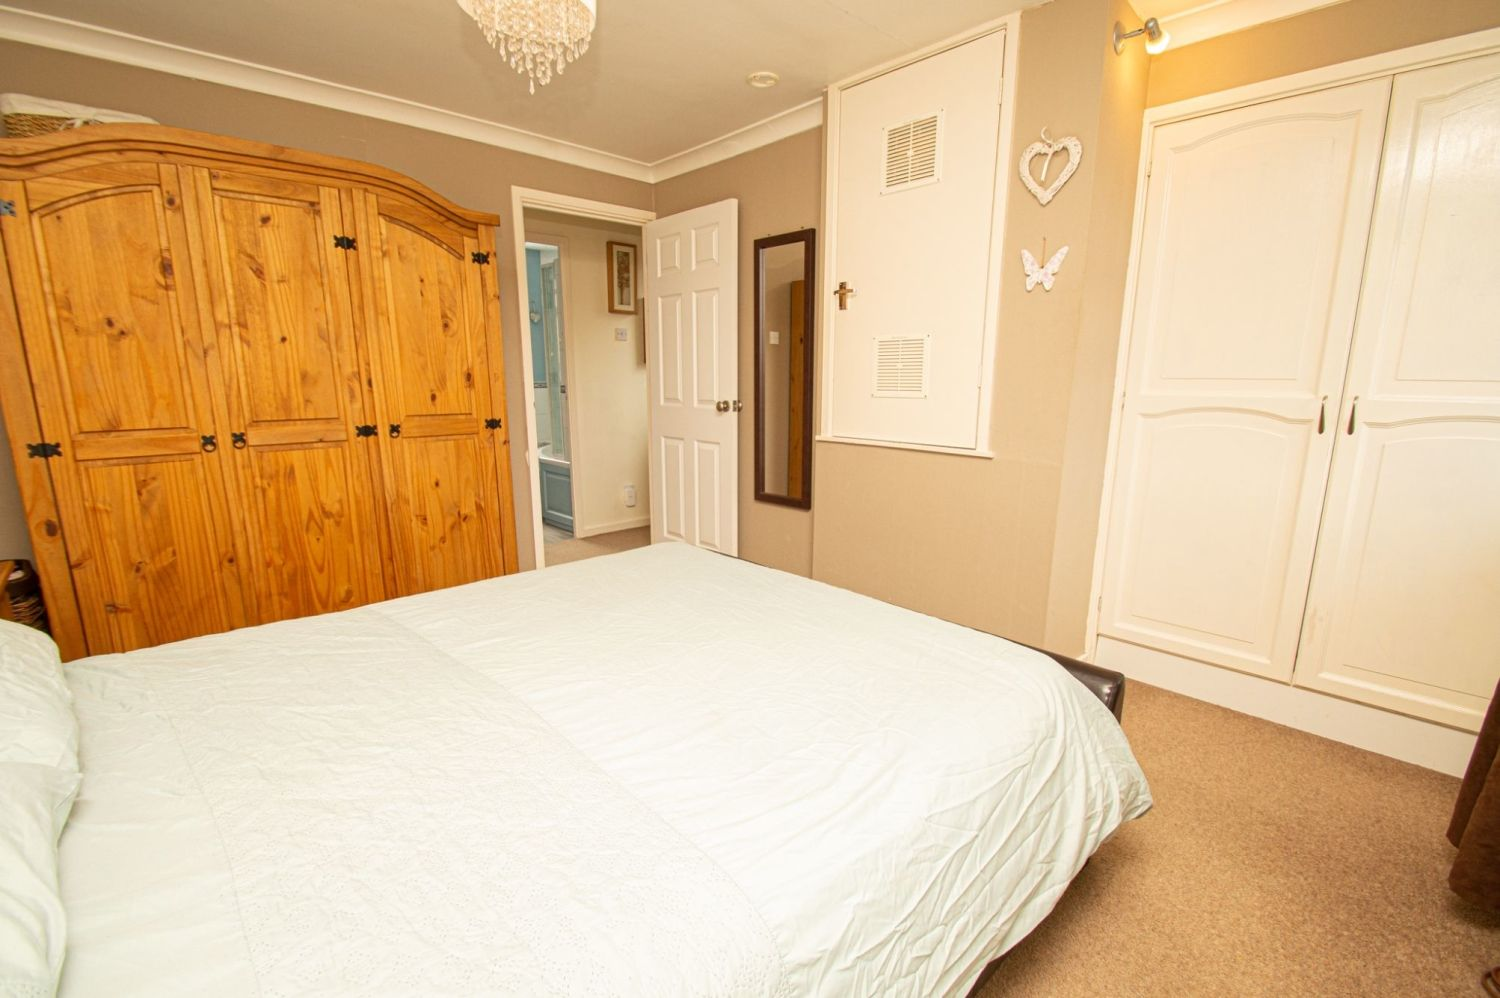 2 bed semi-detached for sale in Brayford Avenue, Brierley Hill  - Property Image 5